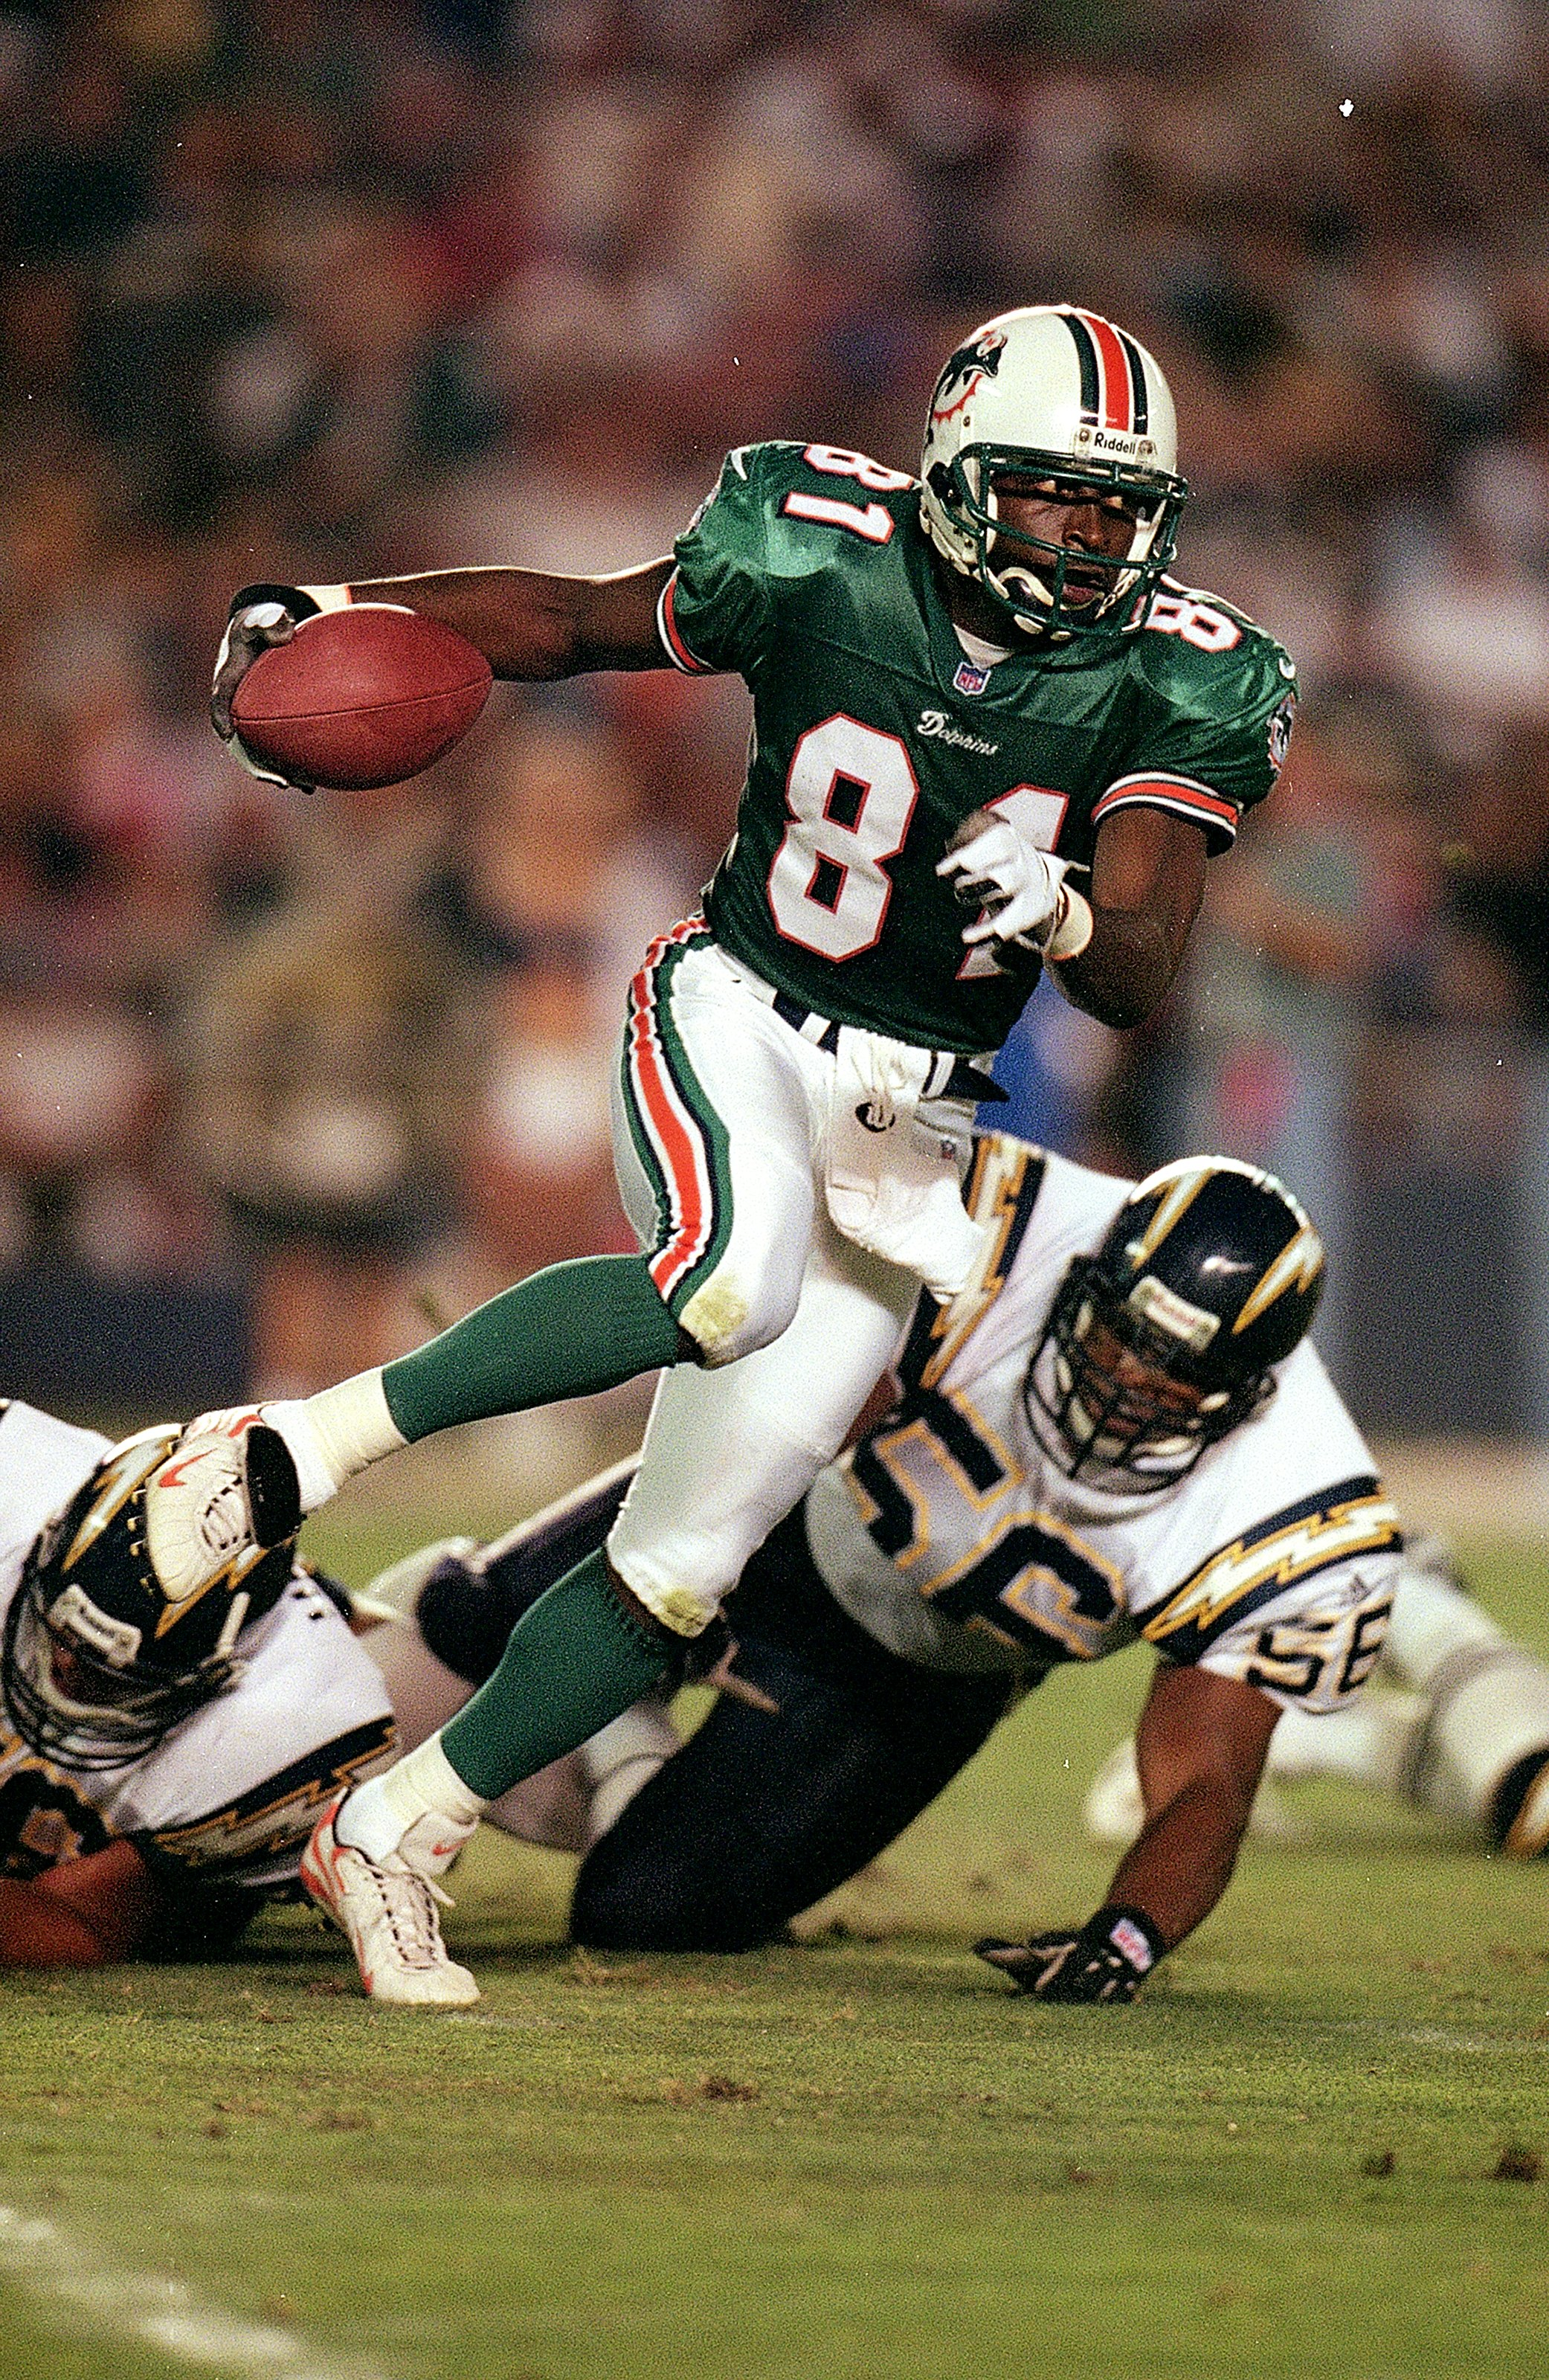 21 Aug 1999:  O.J. McDuffie #81 of the Miami Dolphins carries the ball during the game against the San Diego Chargers at the Qualcomm Stadium in San Diego, California. The Dolphins defeated the Chargers 13-10. Mandatory Credit: Tom Hauck/Allsport